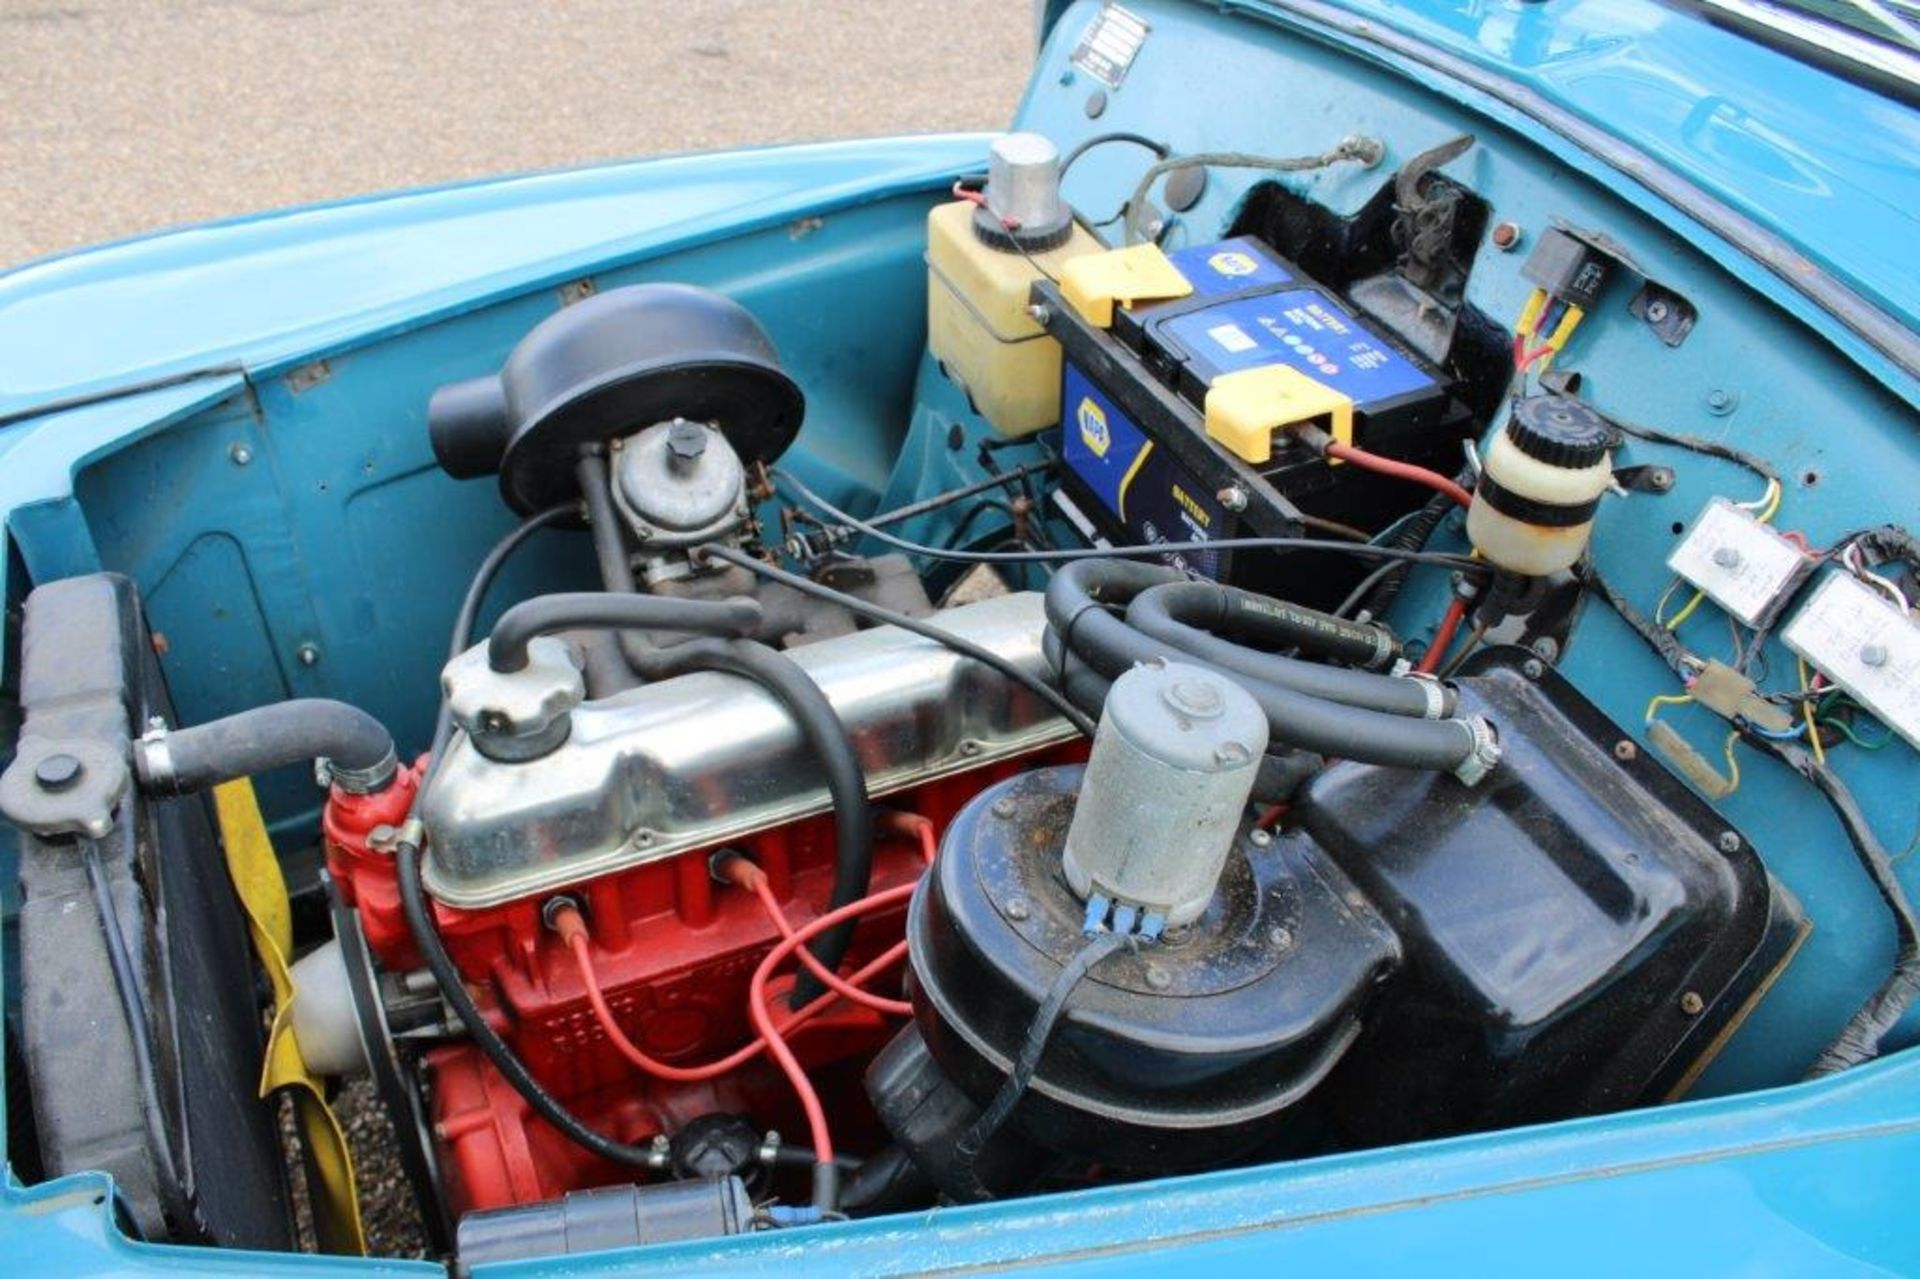 1961 Volvo P 21114 A Pick-Up LHD - Image 20 of 25